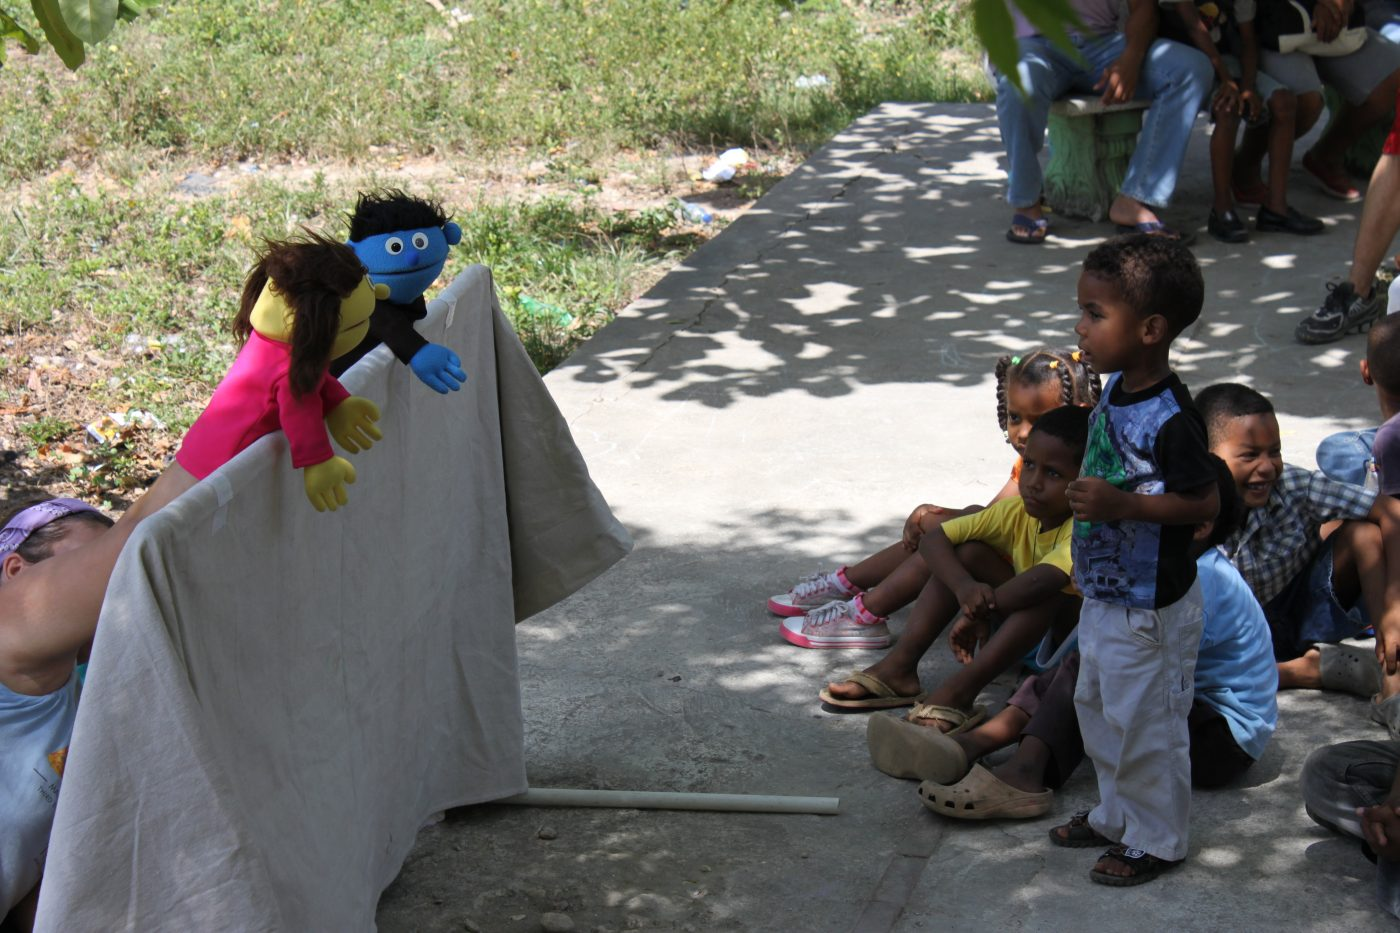 vbs kids on honduras mission trip